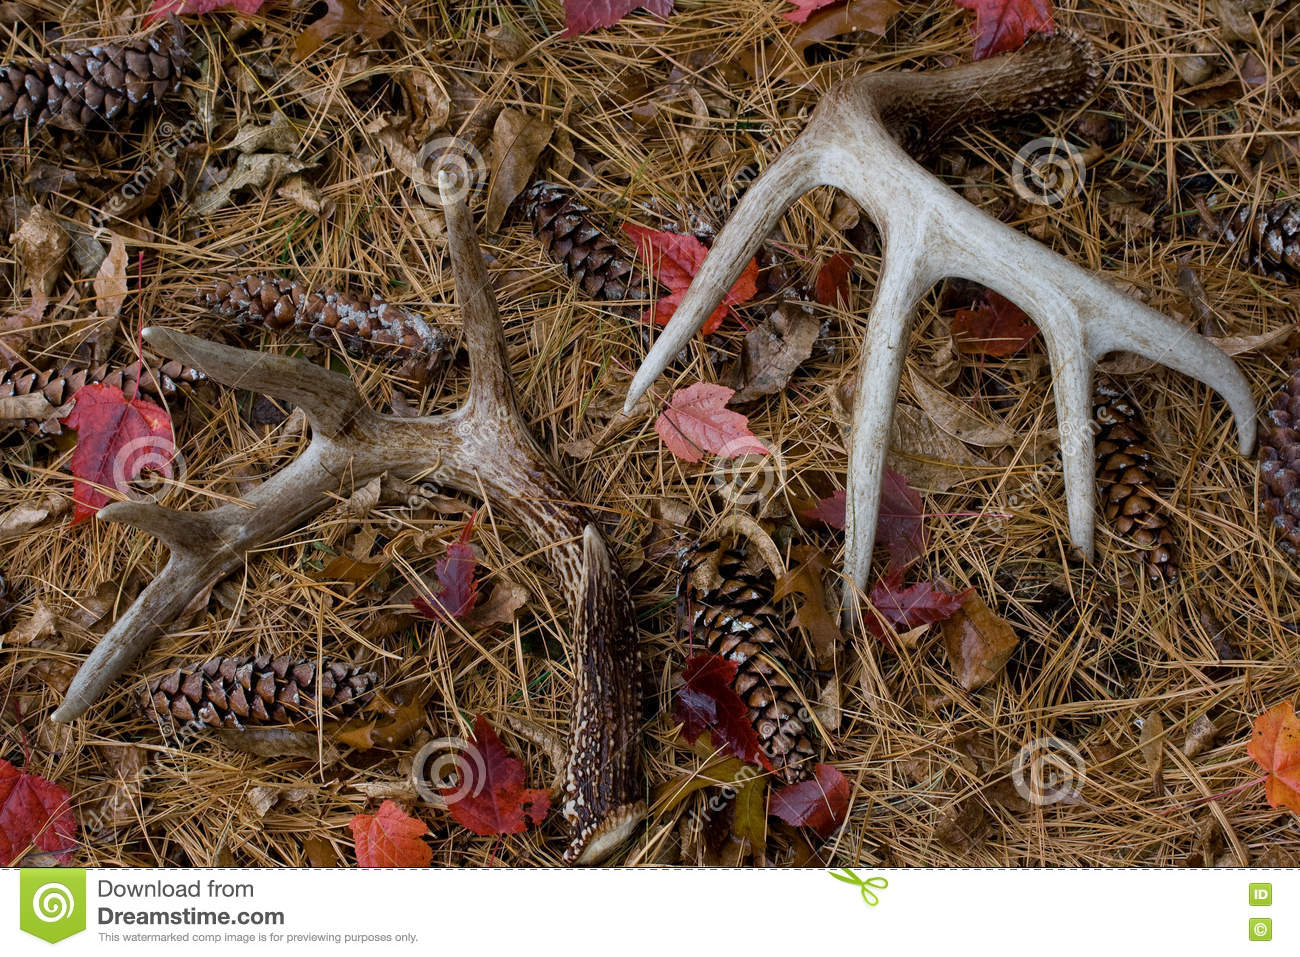 Shed Whitetail Deer Antlers in Pine Needles